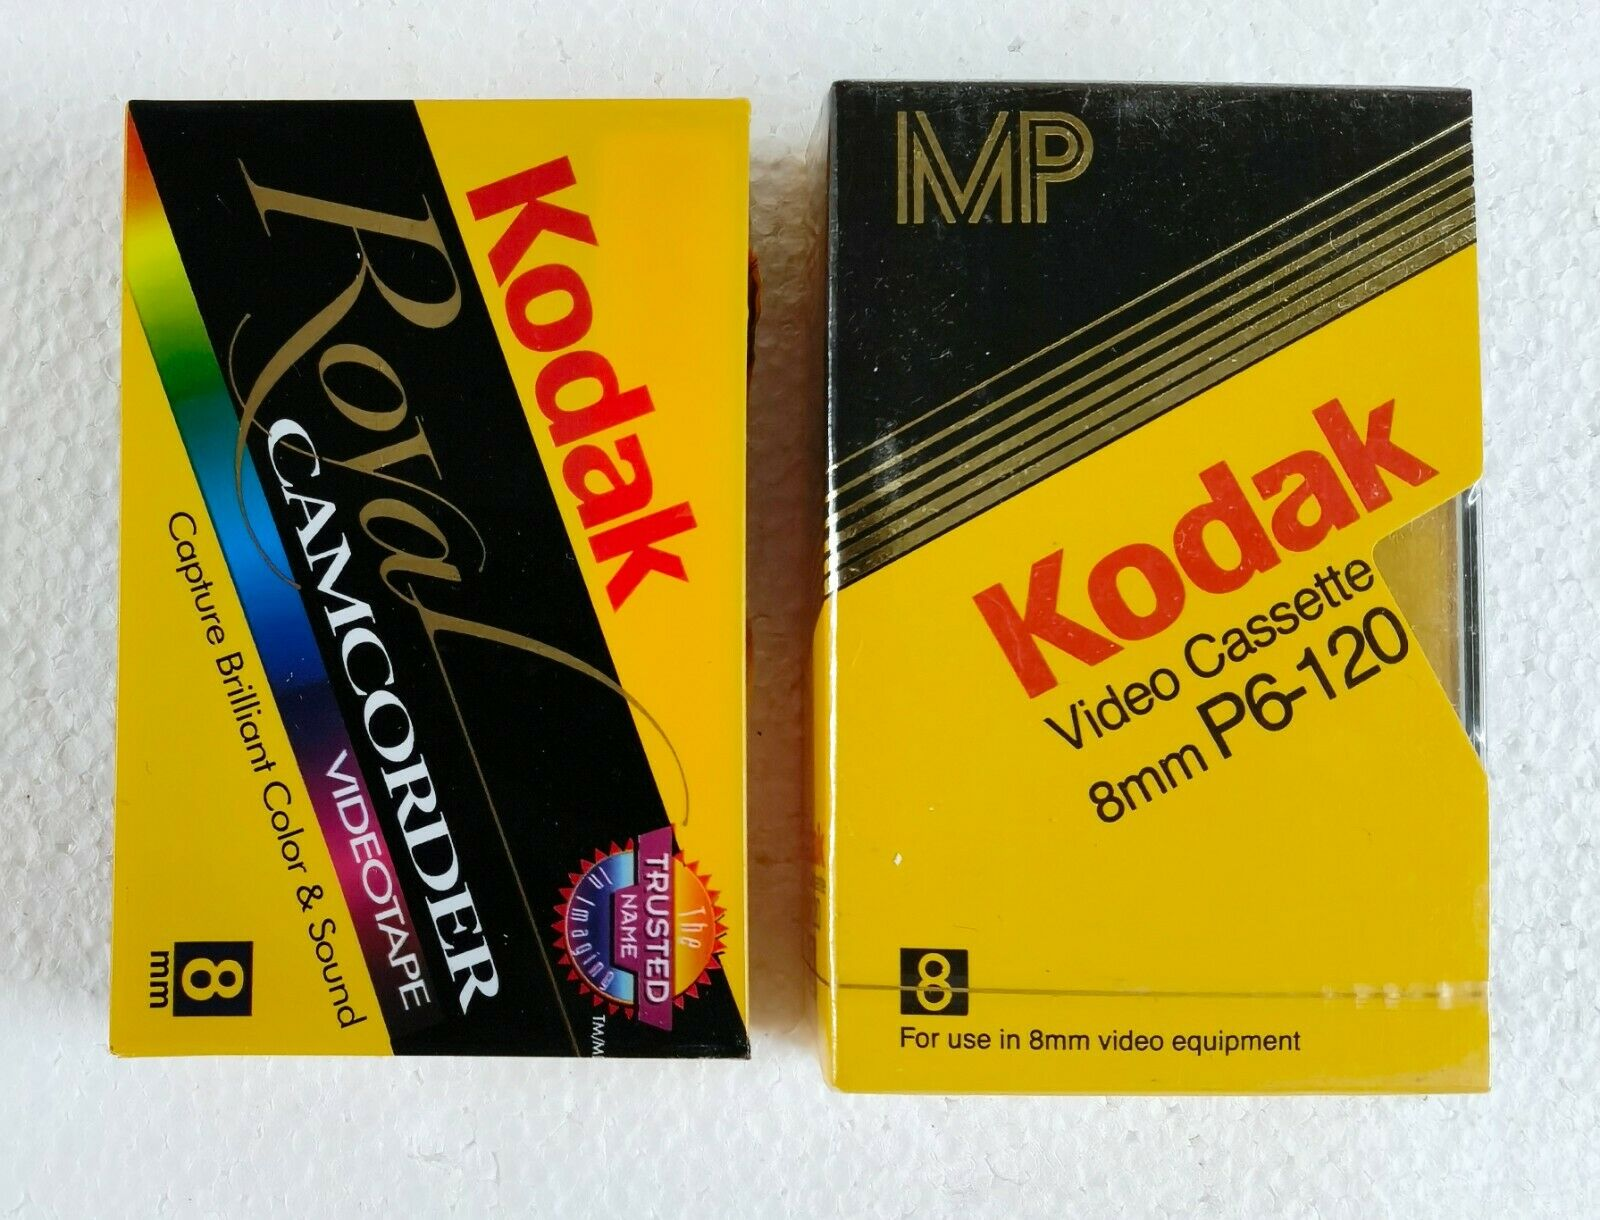 2 Pack Of KODAK P6-120 8mm VIDEO CASSETTE - Made In Germany, Assembled In France